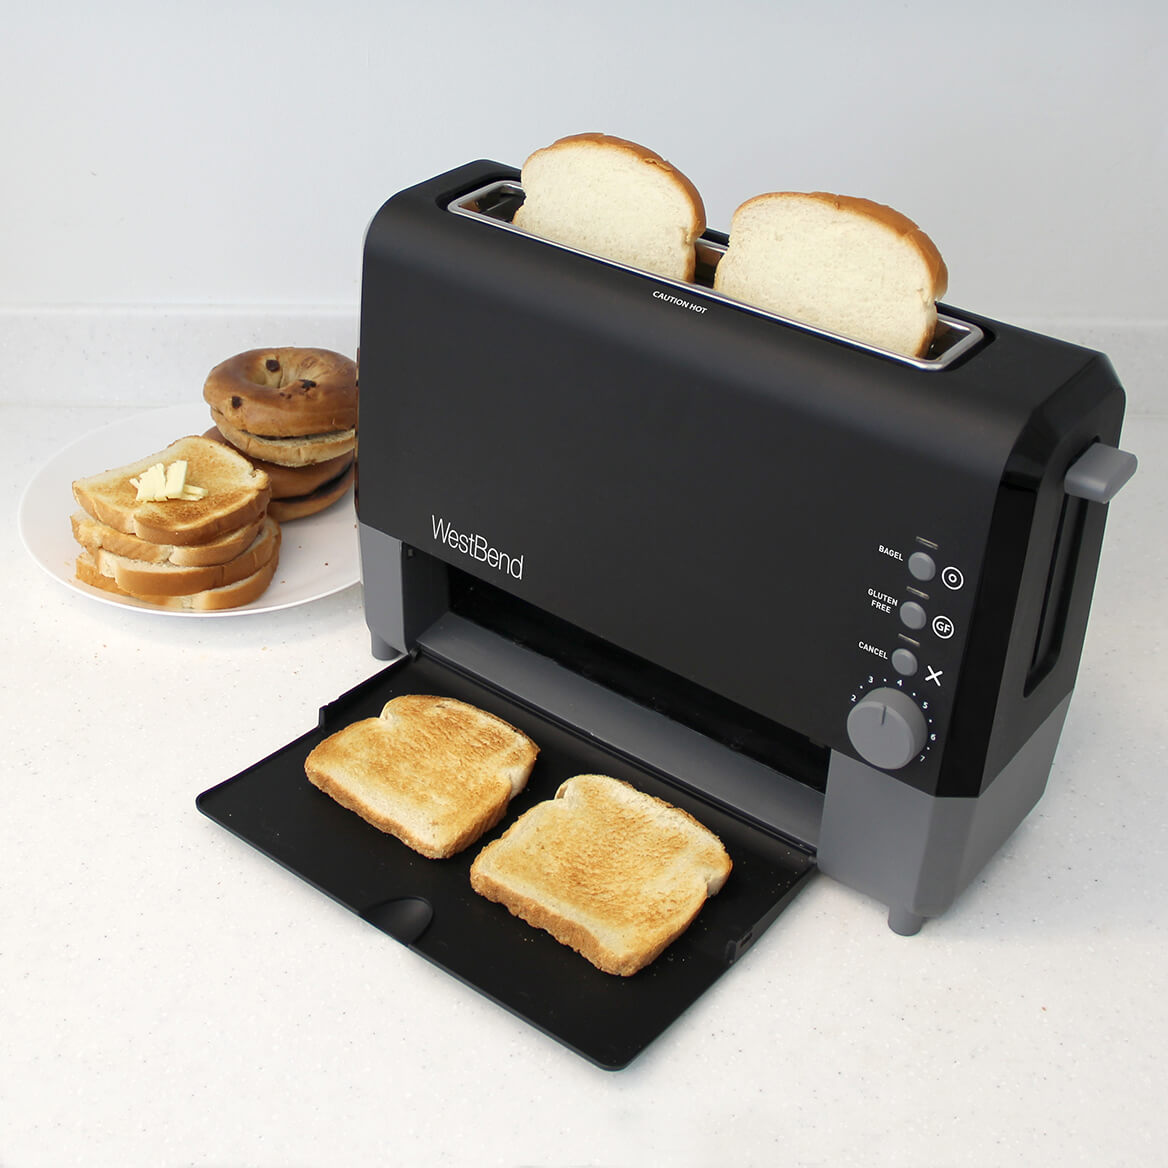 West Bend Quik Serve Toaster-364659